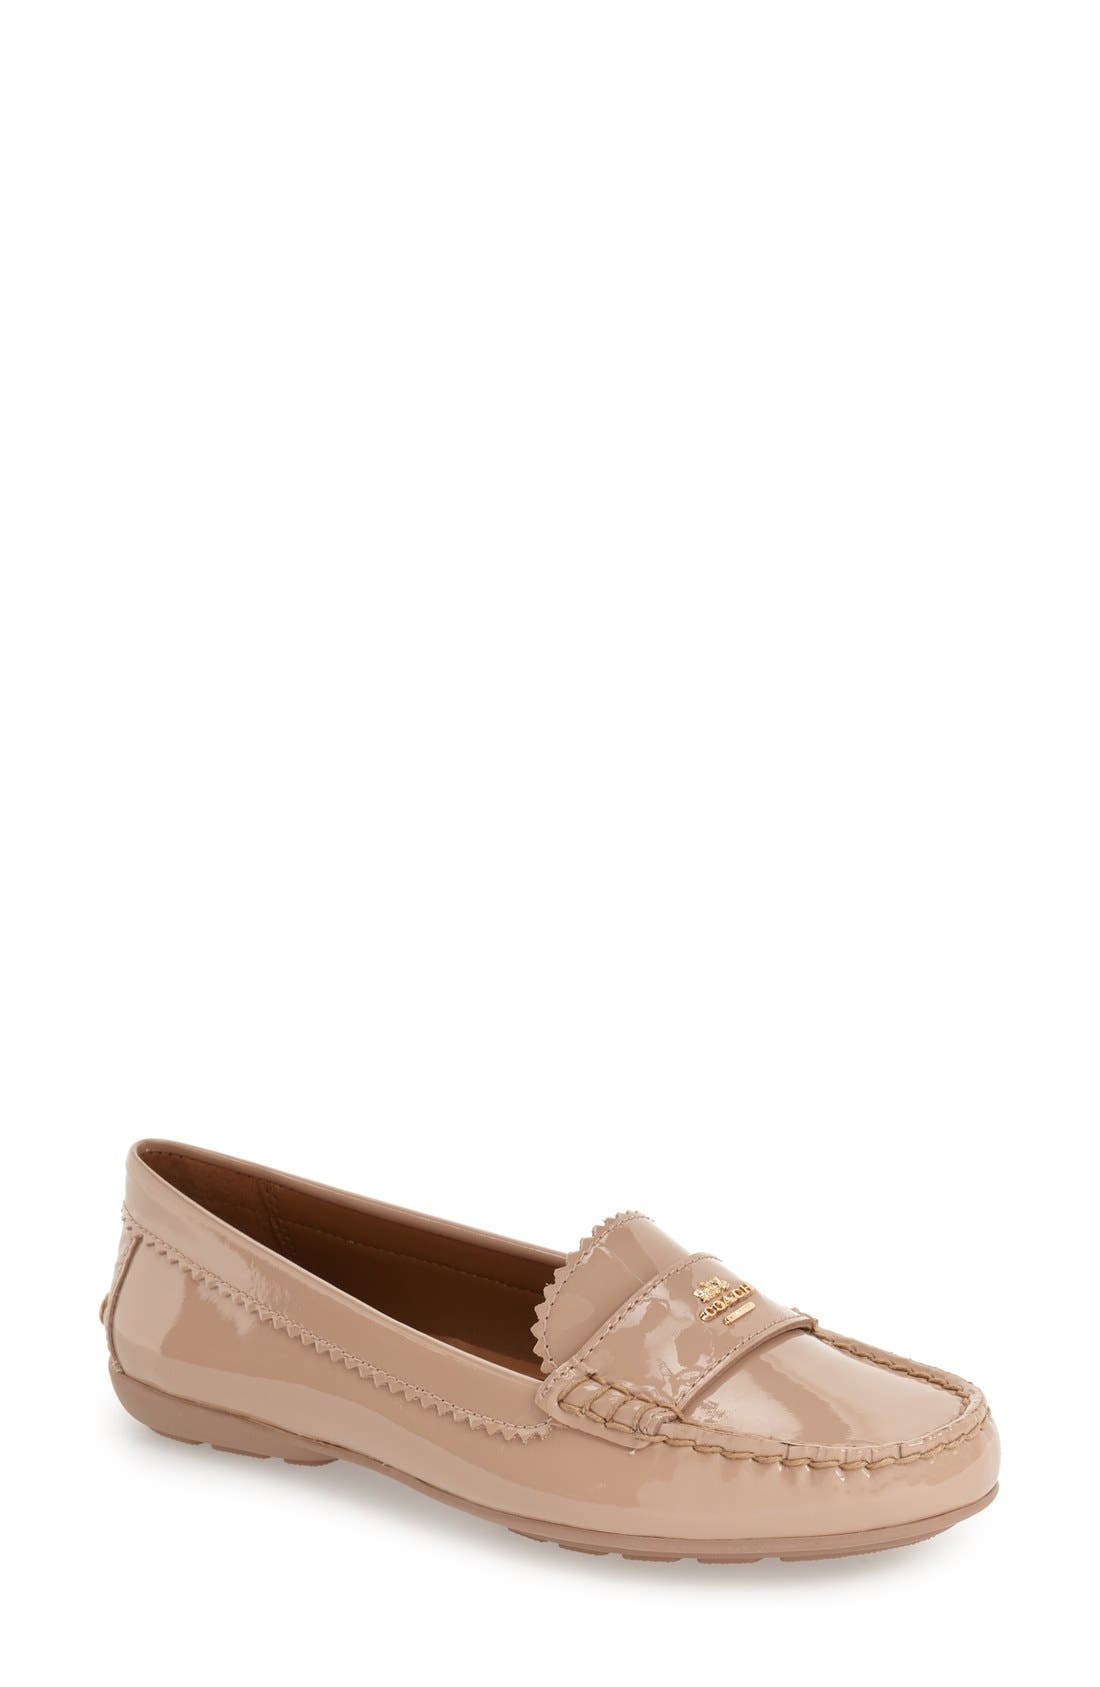 Main Image - COACH 'Odette' Moccasin Loafer (Women)